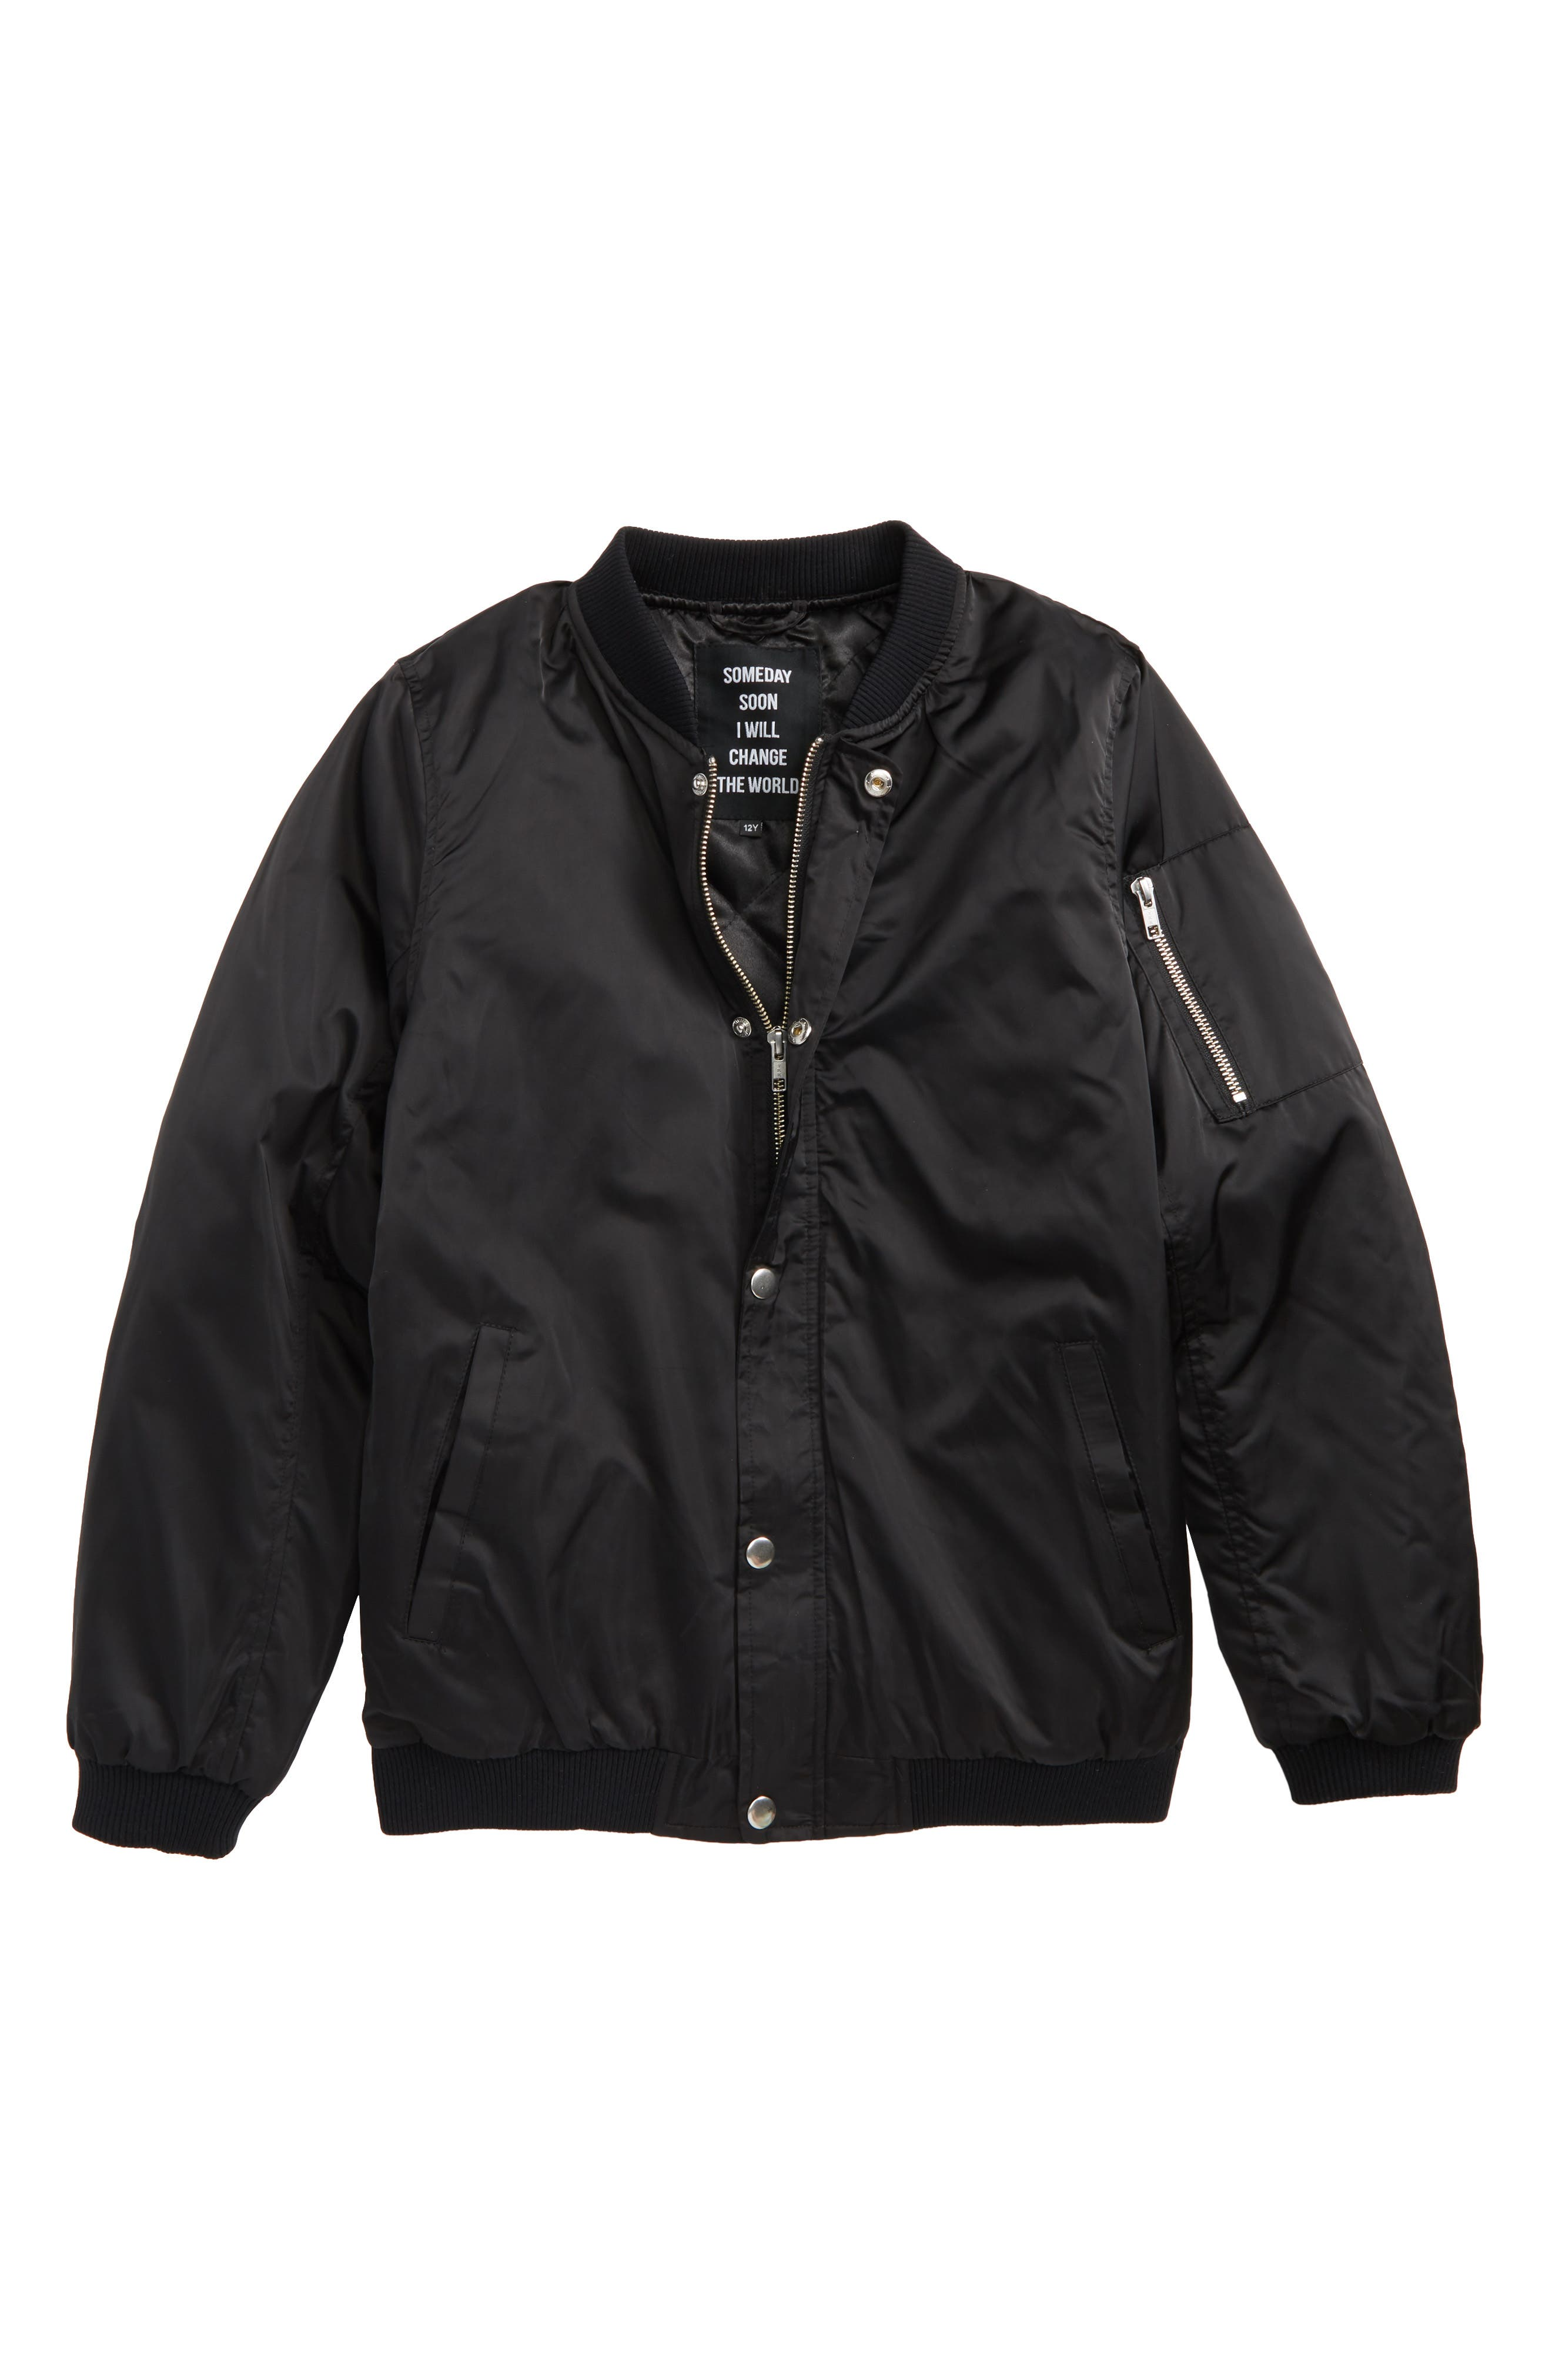 SOMEDAY SOON Callum Bomber Jacket (Big Boys)